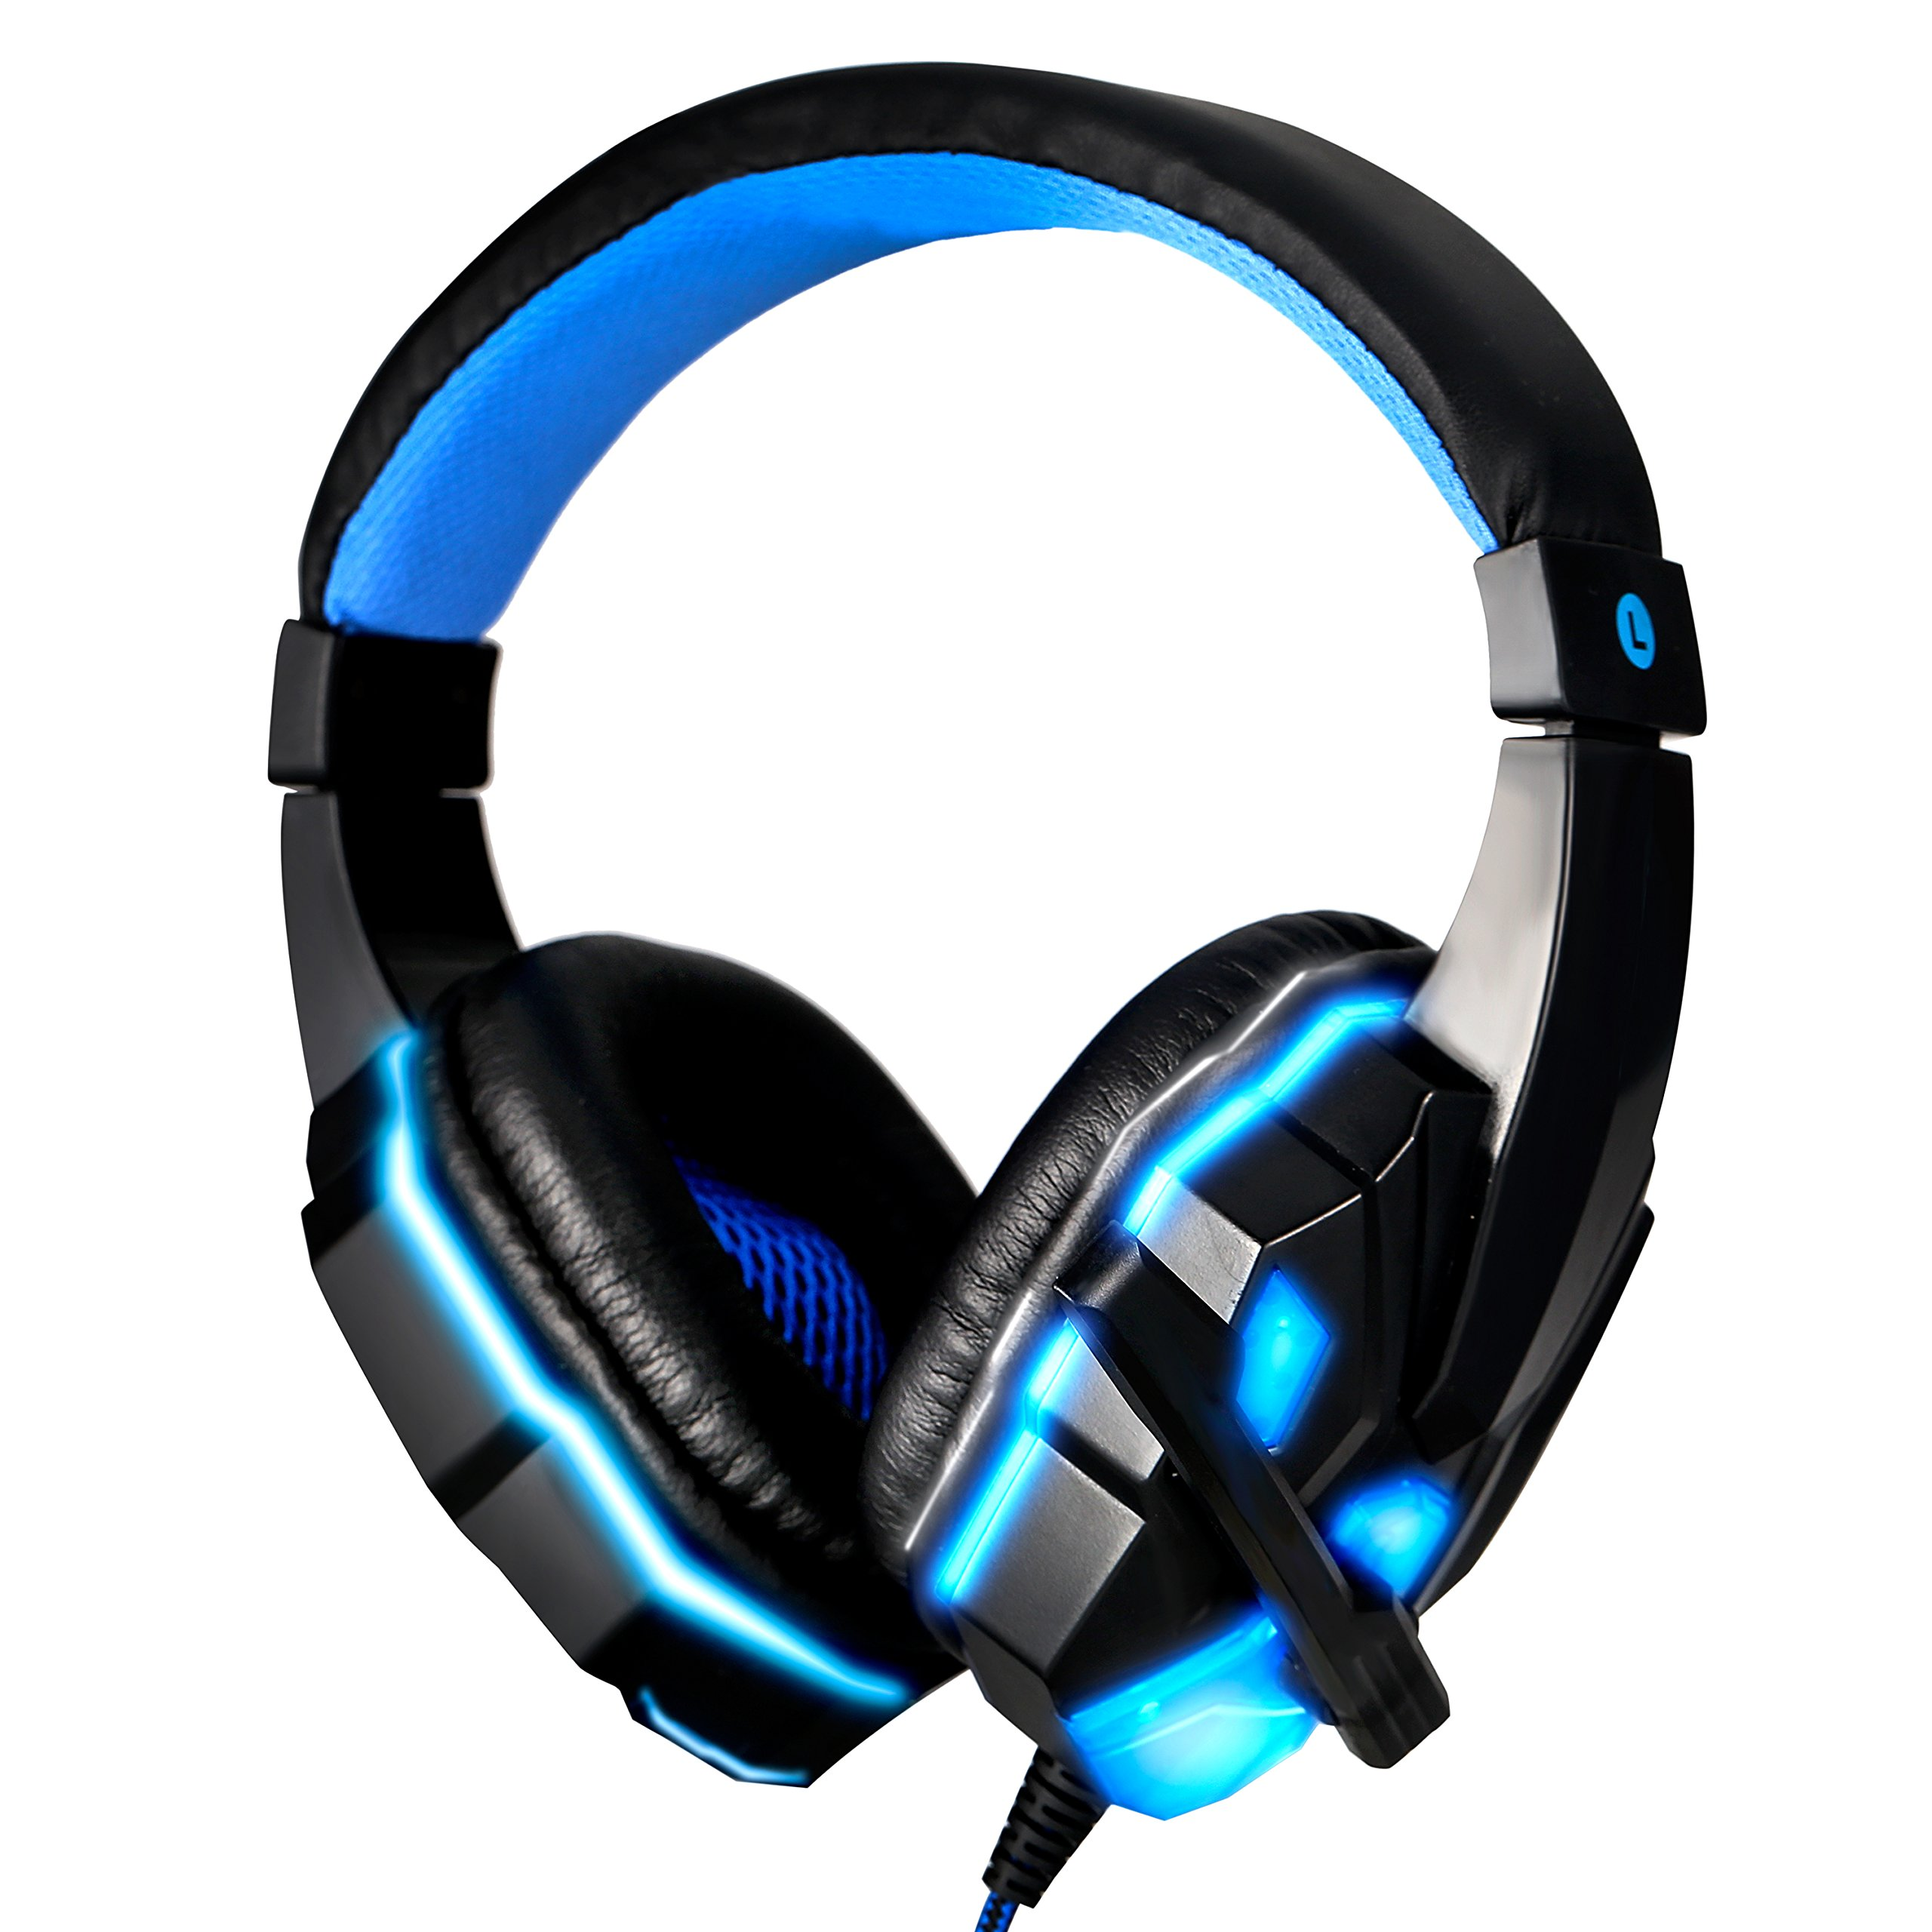 Gaming Headset Noise Cancelling Over Ear Headphones with Mic, LED Lights for PC Laptop Mac iPad Computer Smartphones USA Shipping(Black Blue) by Pevor